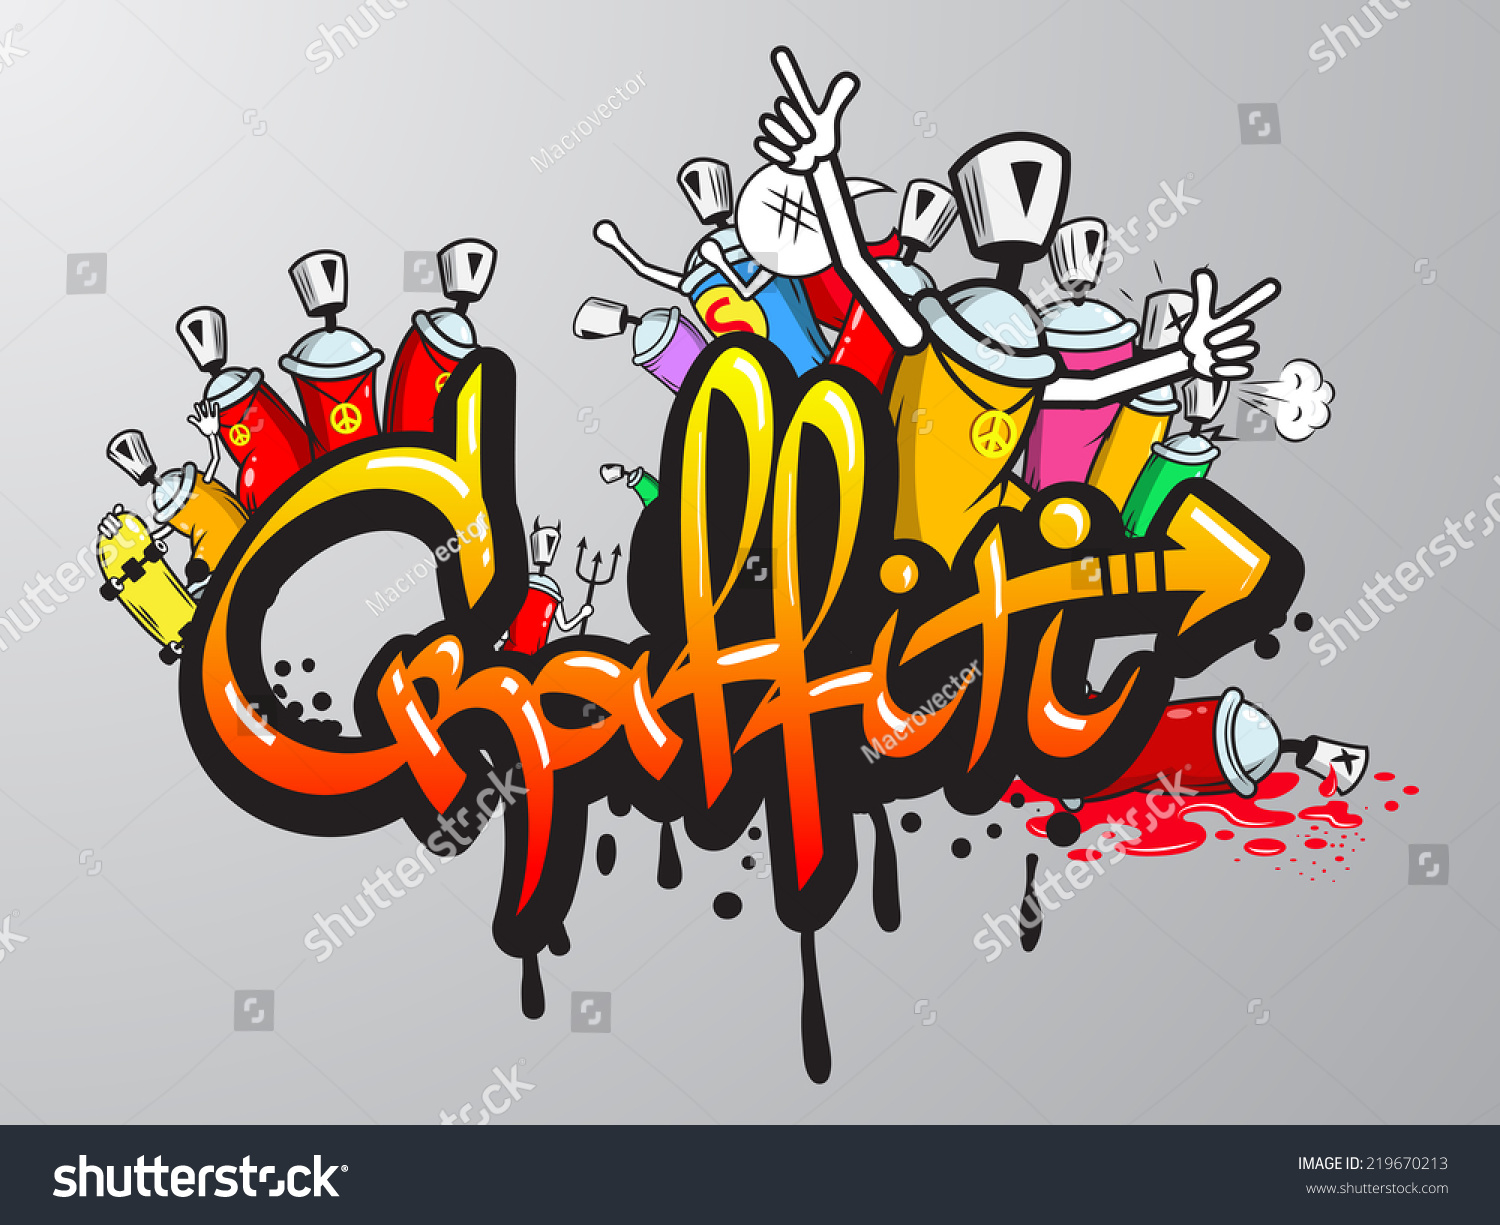 Graffiti wall clipart - Decorative Graffiti Art Spray Paint Letters And Characters Composition Abstract Wall Aerosol Sketch Grunge Illustration